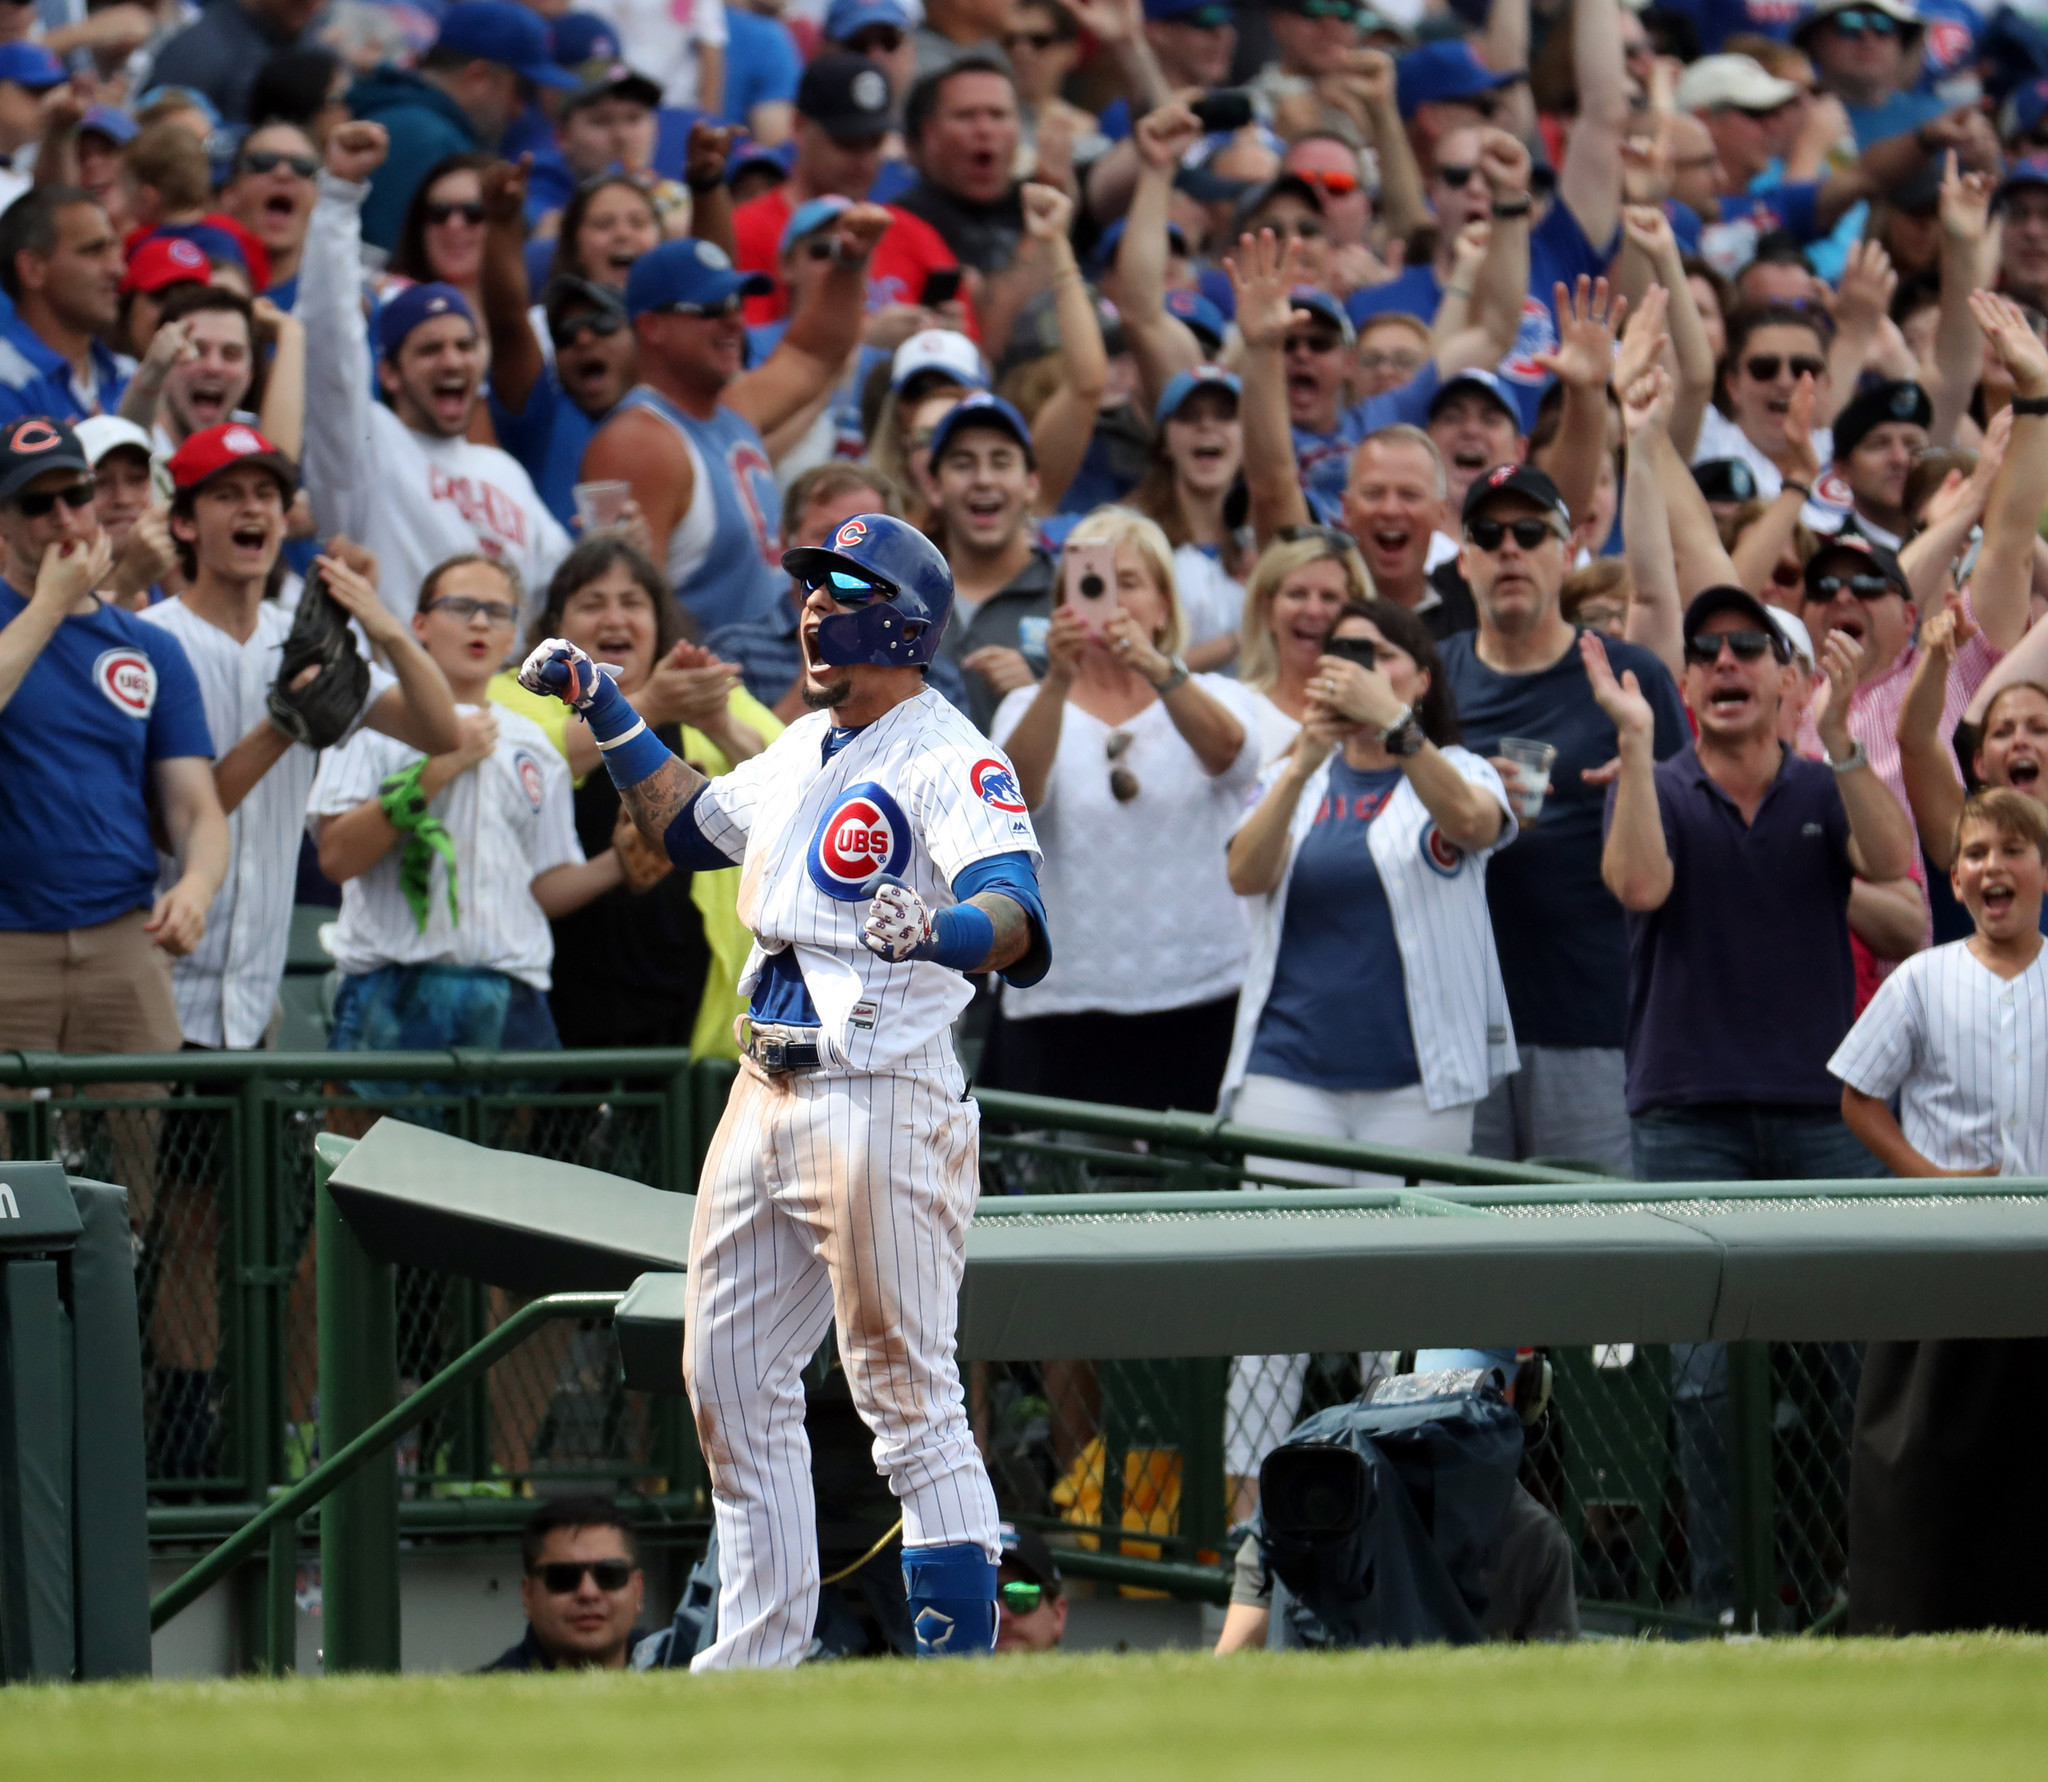 4 takeaways from the Cubs-Mets series, including Javier Baez's big moment, Anthony Rizzo's odd run and Cole Hamels' 'shocking' single